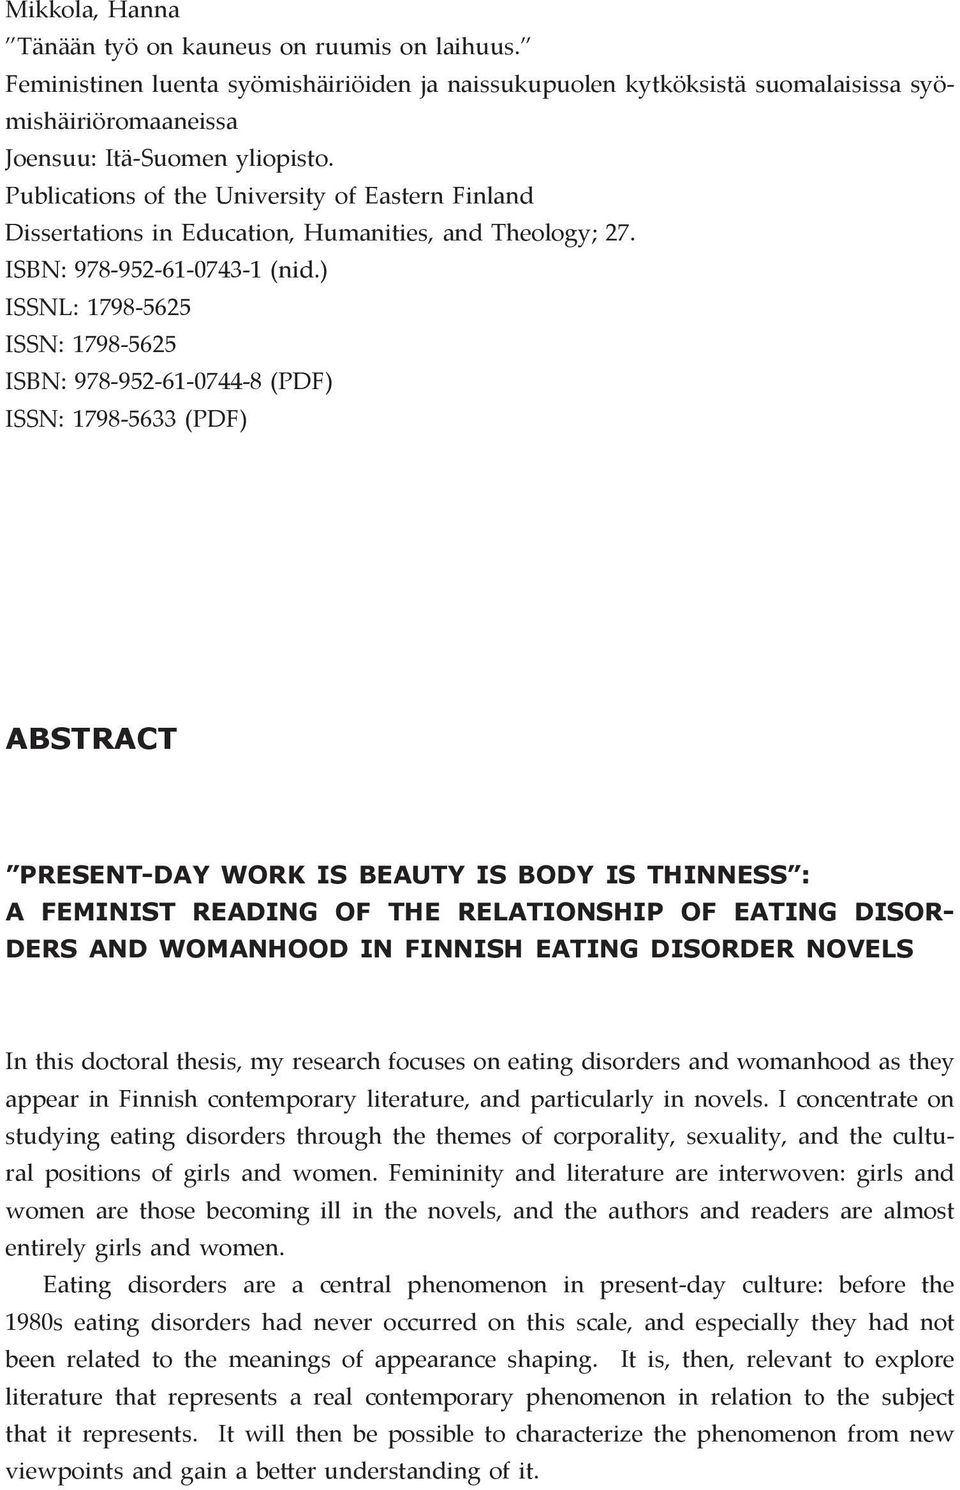 ) ISSNL: 1798-5625 ISSN: 1798-5625 ISBN: 978-952-61-0744-8 (PDF) ISSN: 1798-5633 (PDF) ABSTRACT PRESENT-DAY WORK IS BEAUTY IS BODY IS THINNESS : A Feminist Reading of the Relationship of Eating